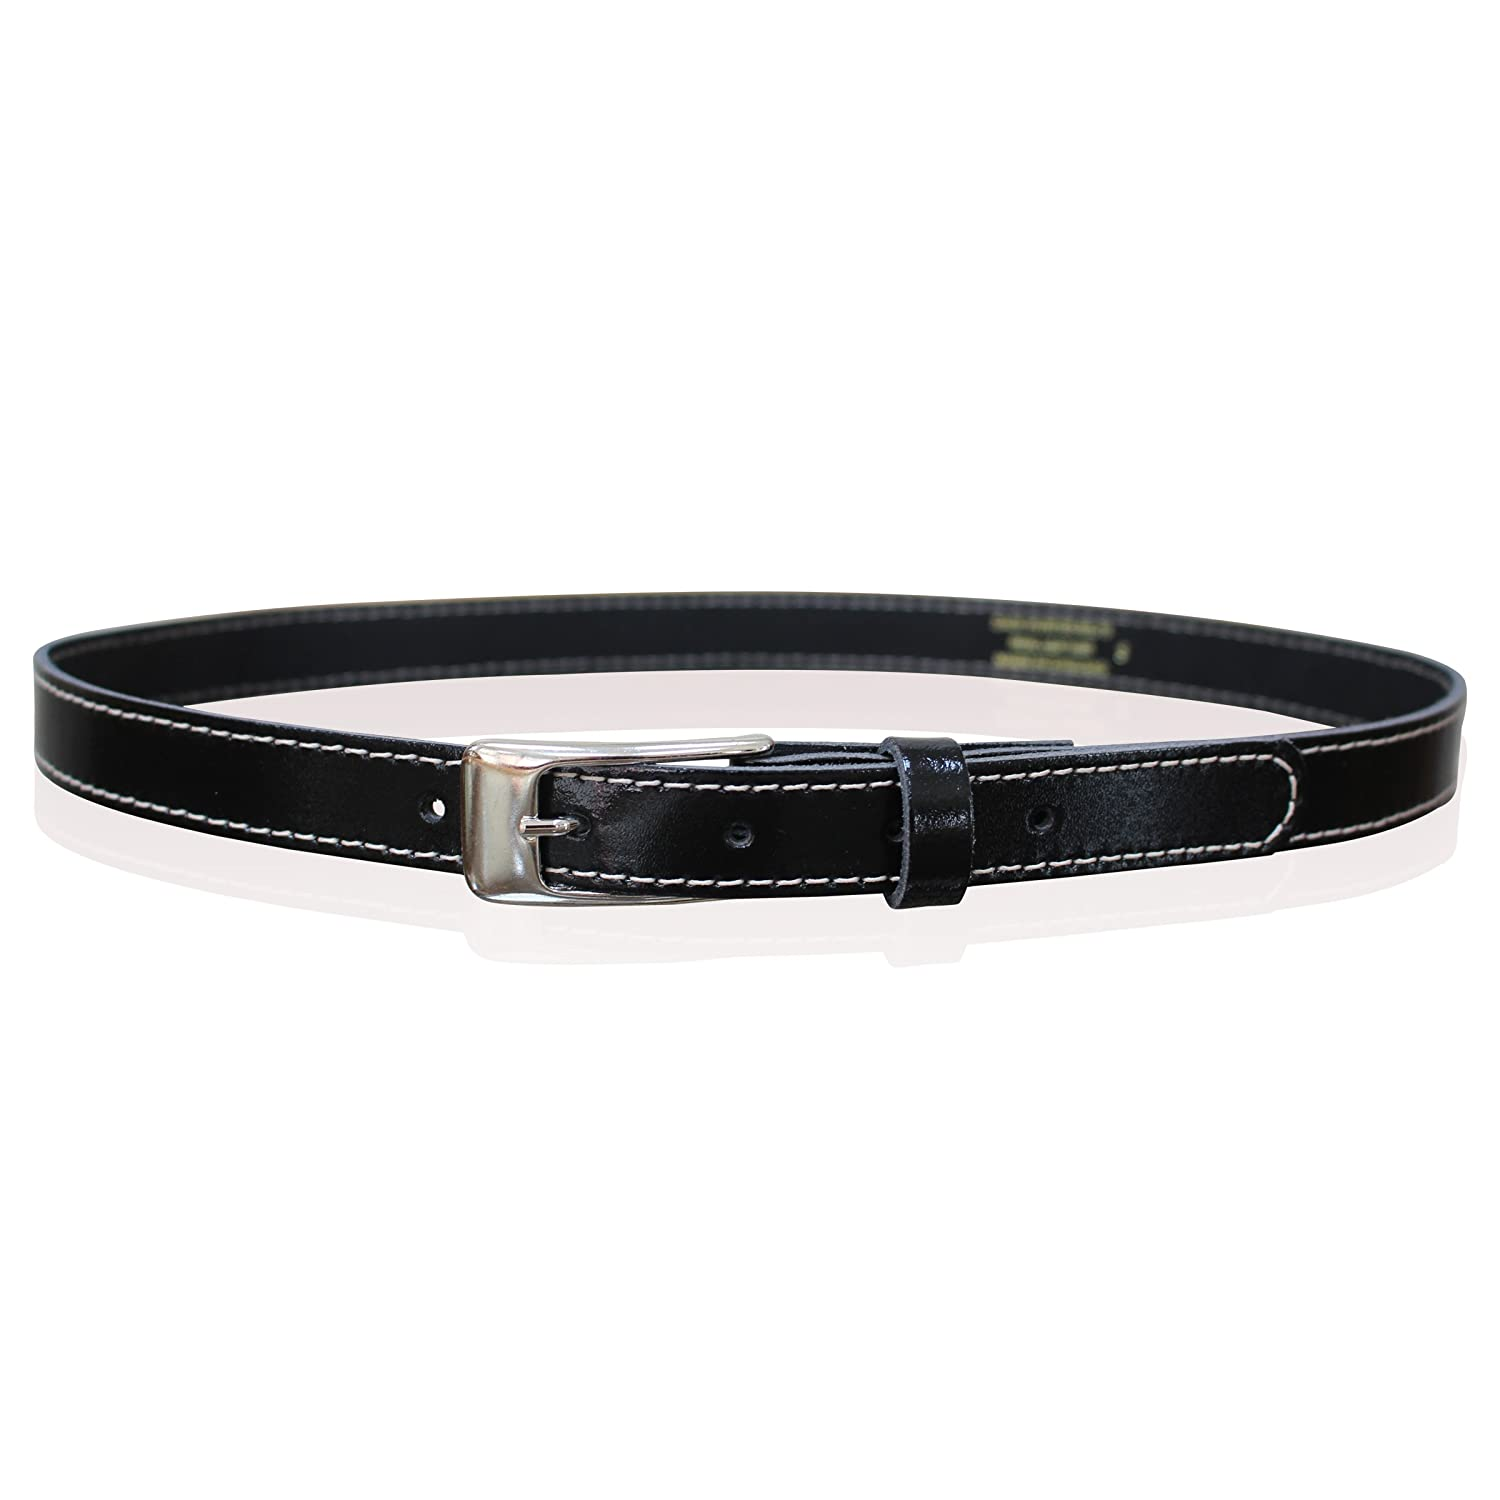 NEW LADIES LEATHER SKINNY BELTS WOMENS BELTS STYLISH STITCHING MADE IN ENGLAND